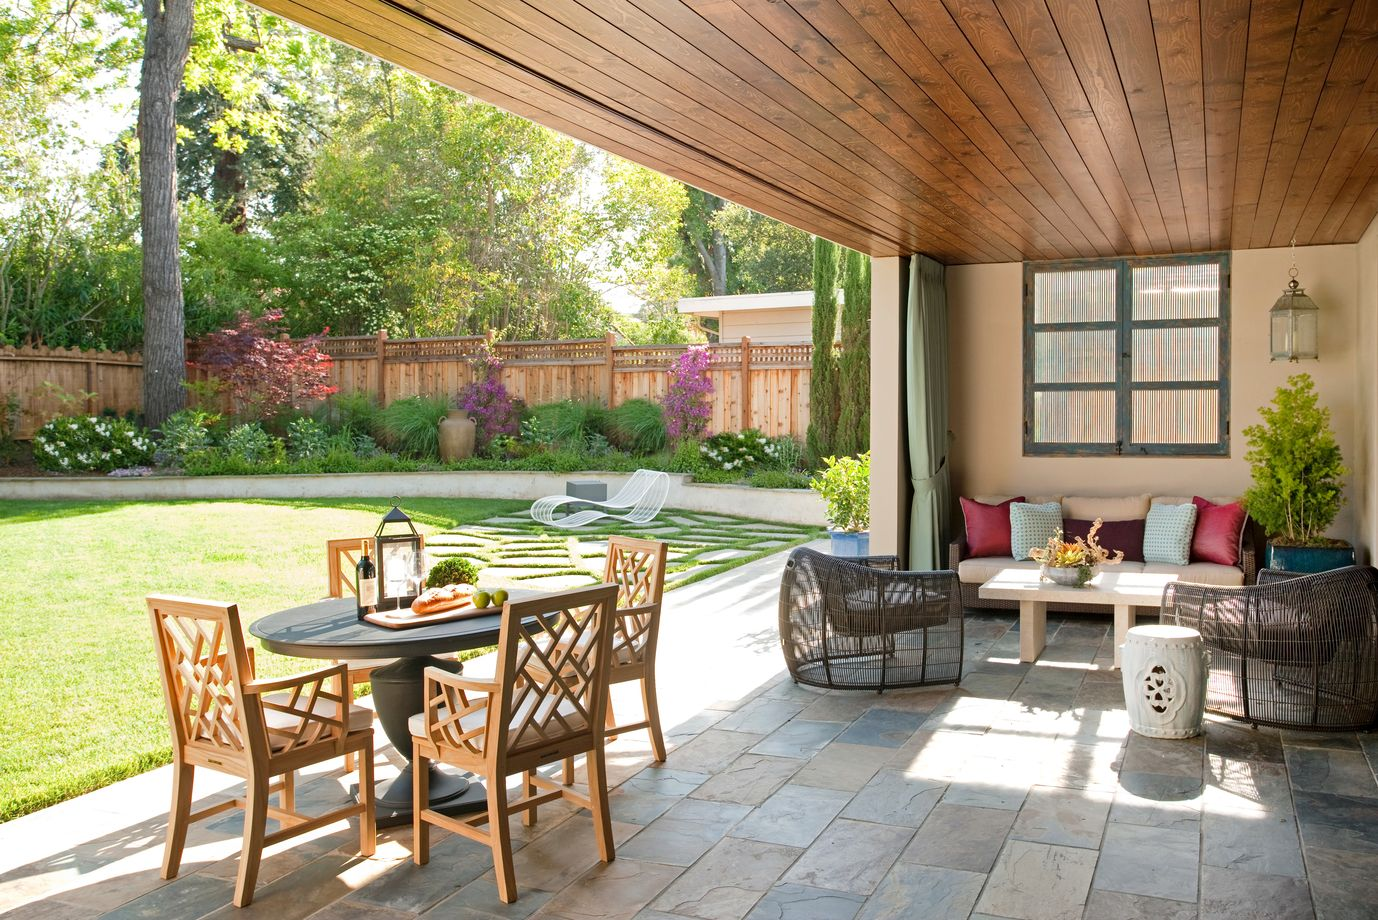 Outdoor Living 8 Ideas To Get The Most Out Of Your Space